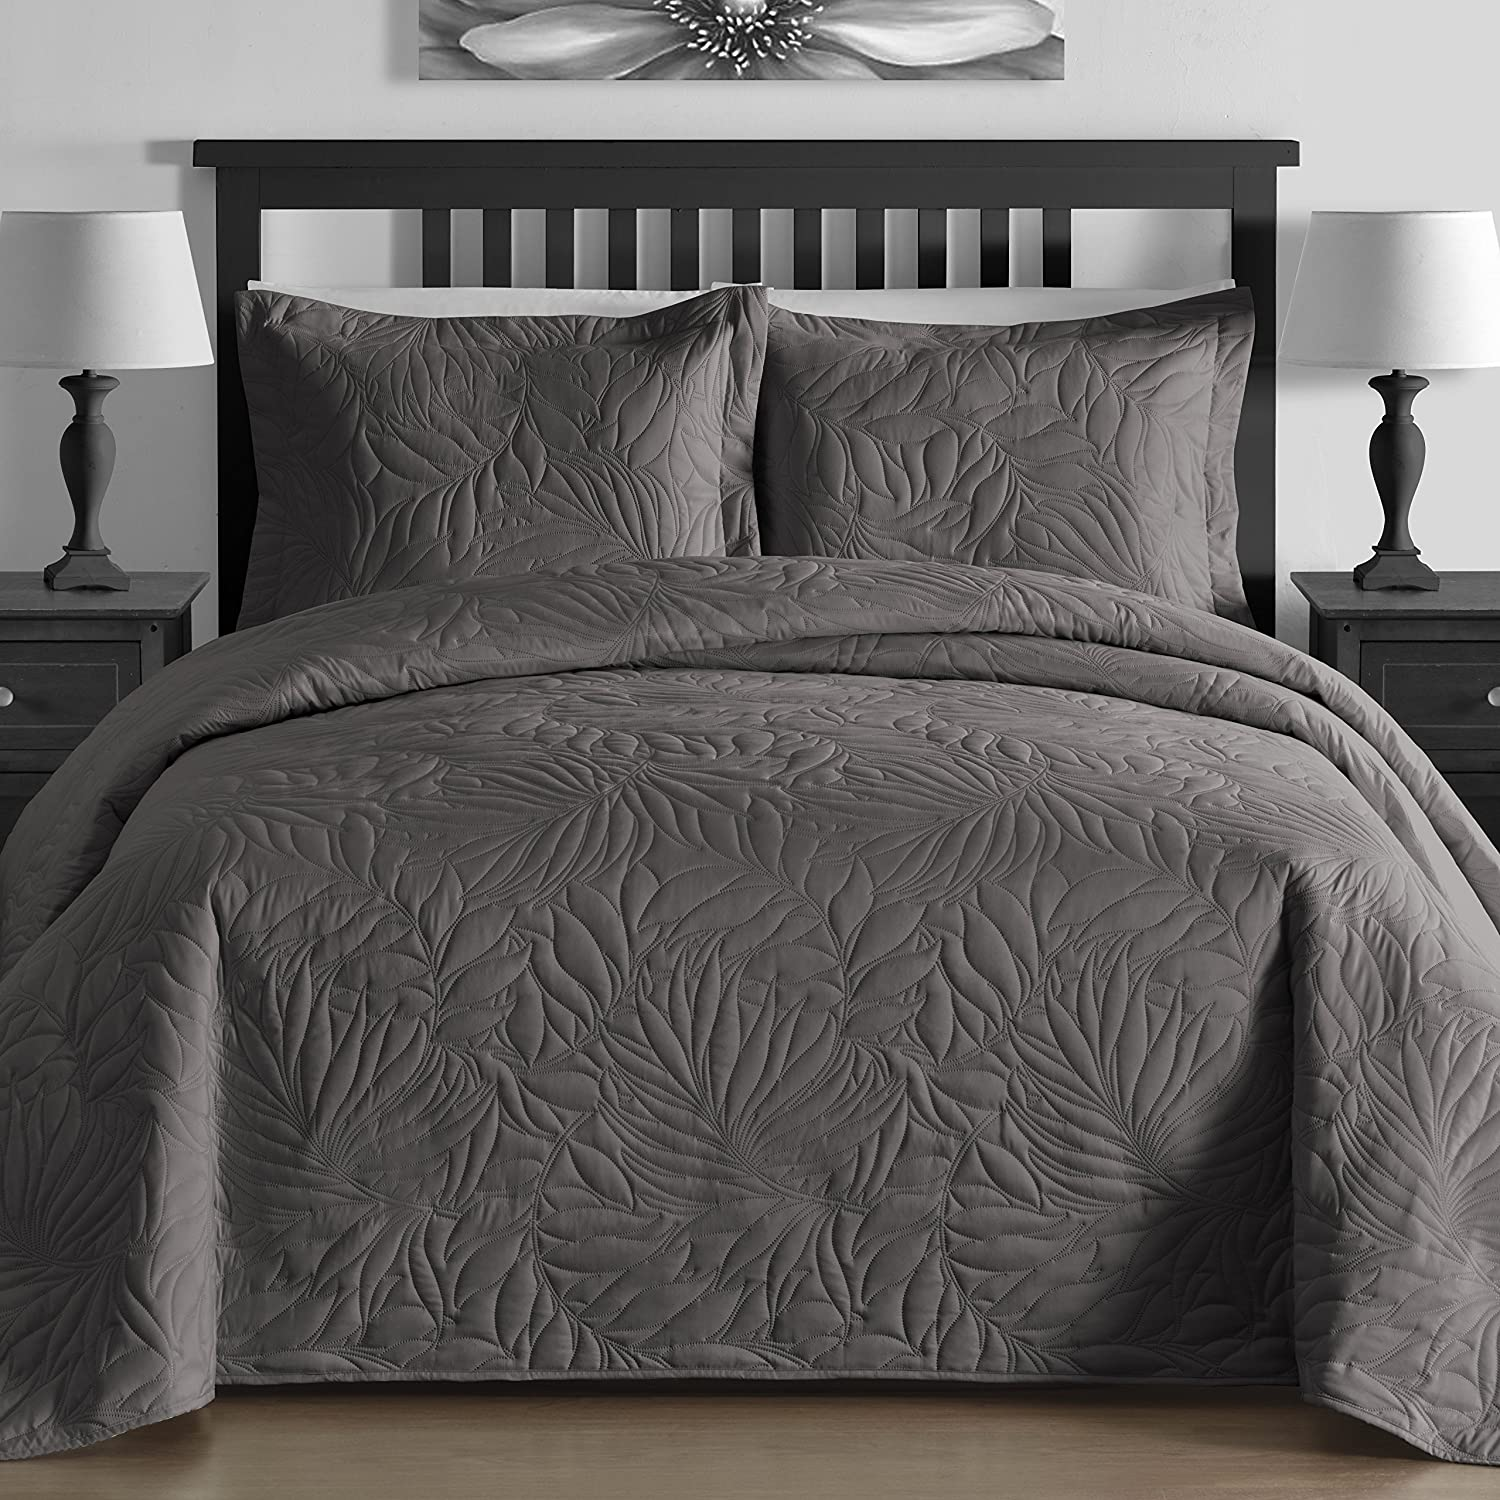 3-piece Bedspread Coverlet Set